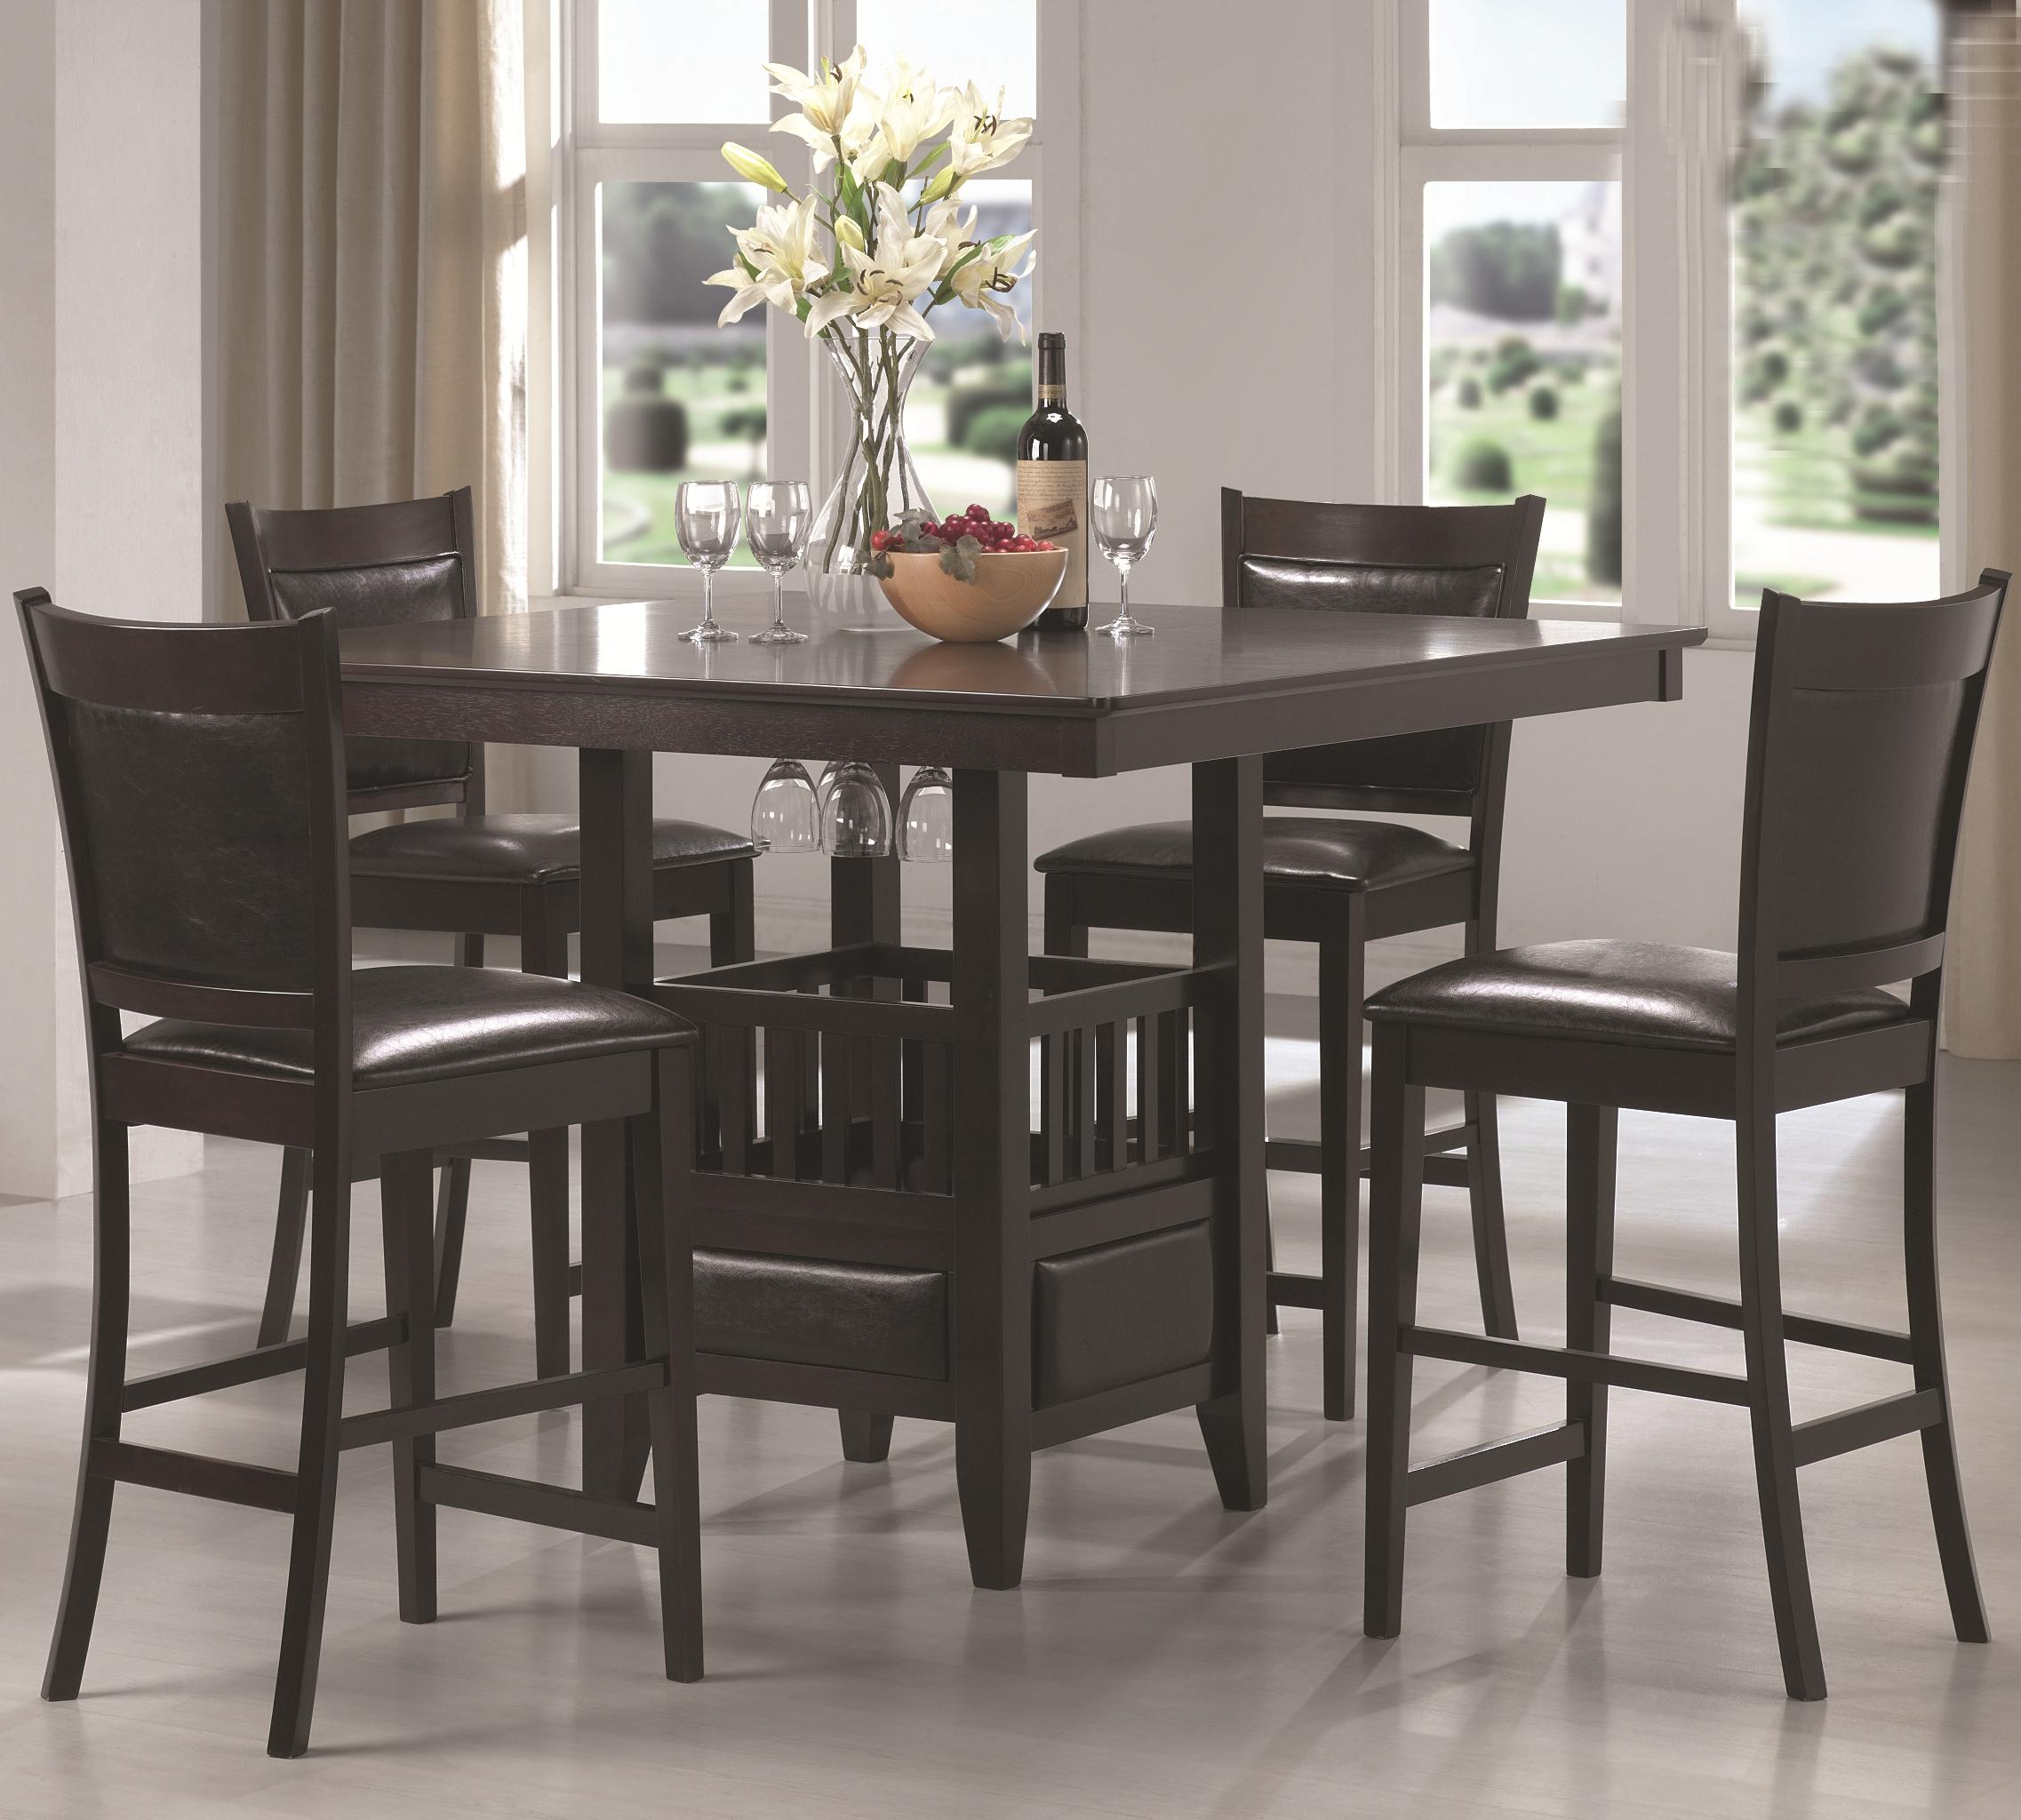 counter height kitchen chairs Coaster Jaden Square Counter Height Table Cushioned Stool Set Coaster Fine Furniture